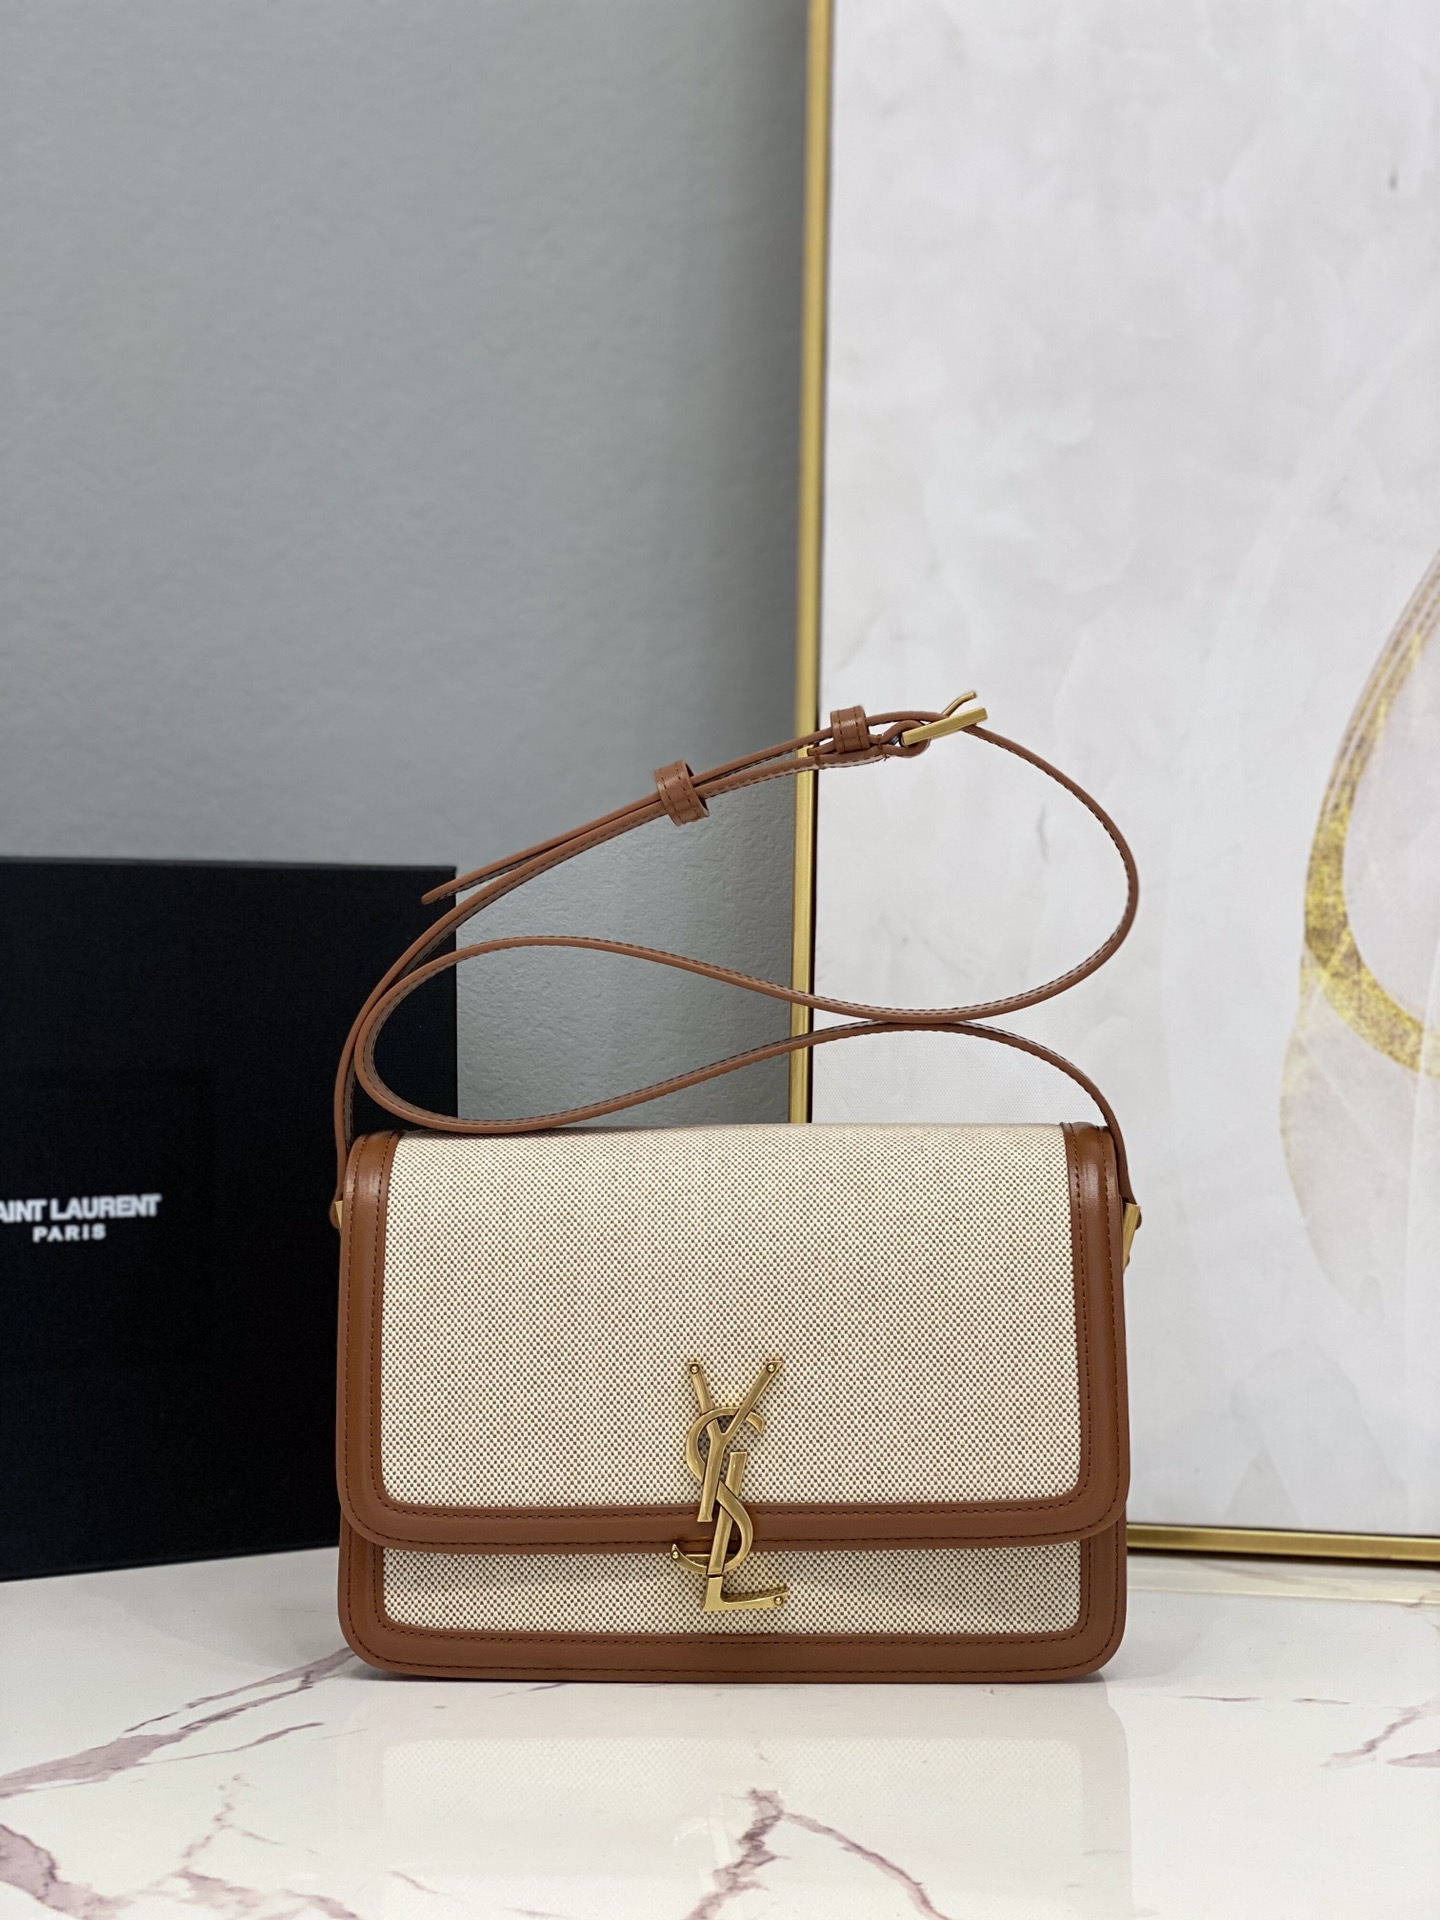 2021 cheap Saint Laurent solferino medium satchel in cotton canvas and leather